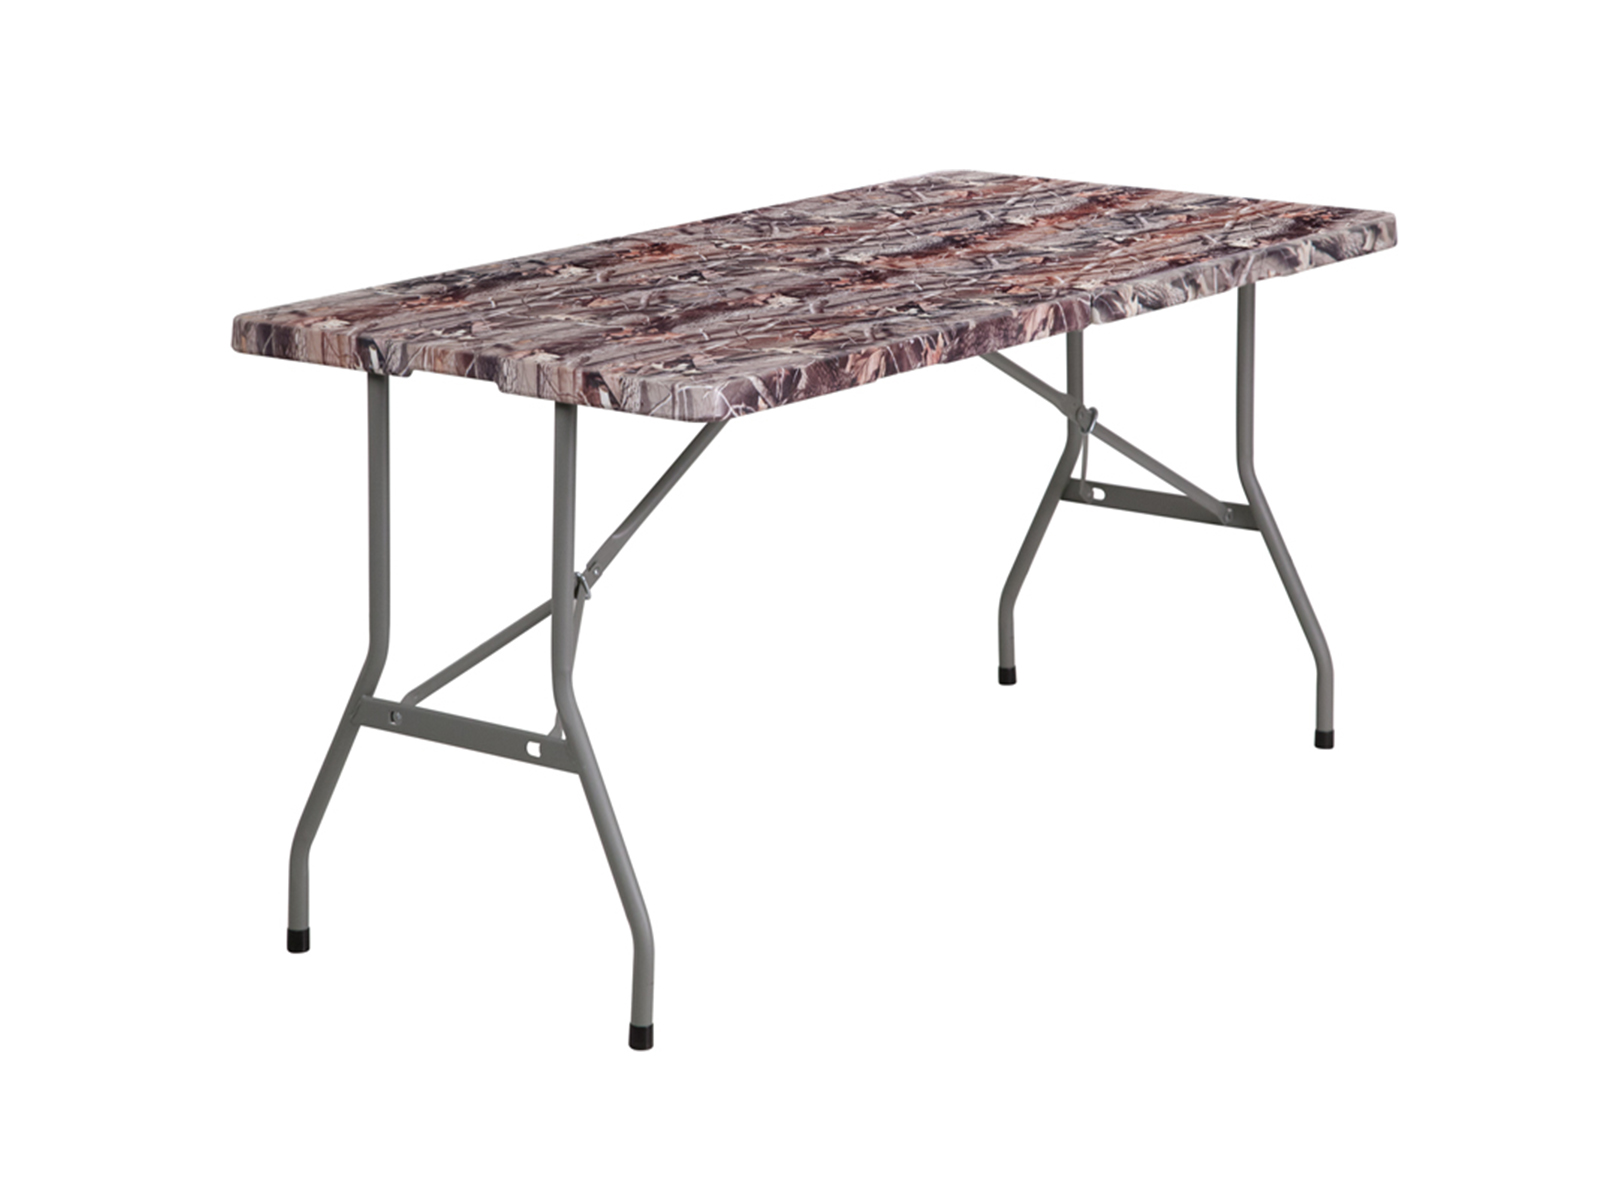 5' Bi-Fold Camouflage Plastic Folding Table